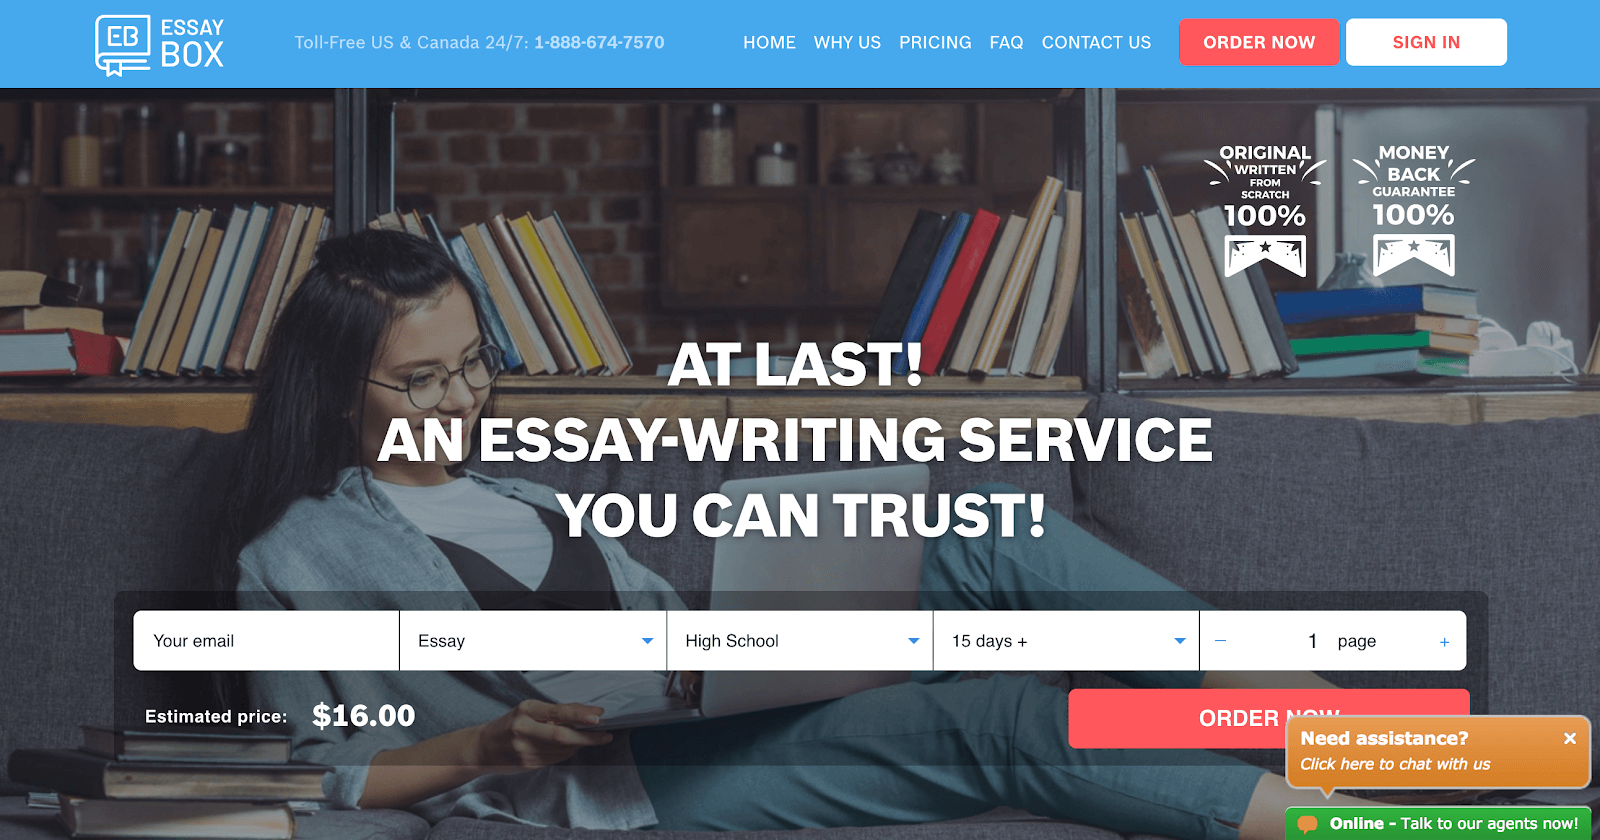 essaybox home page